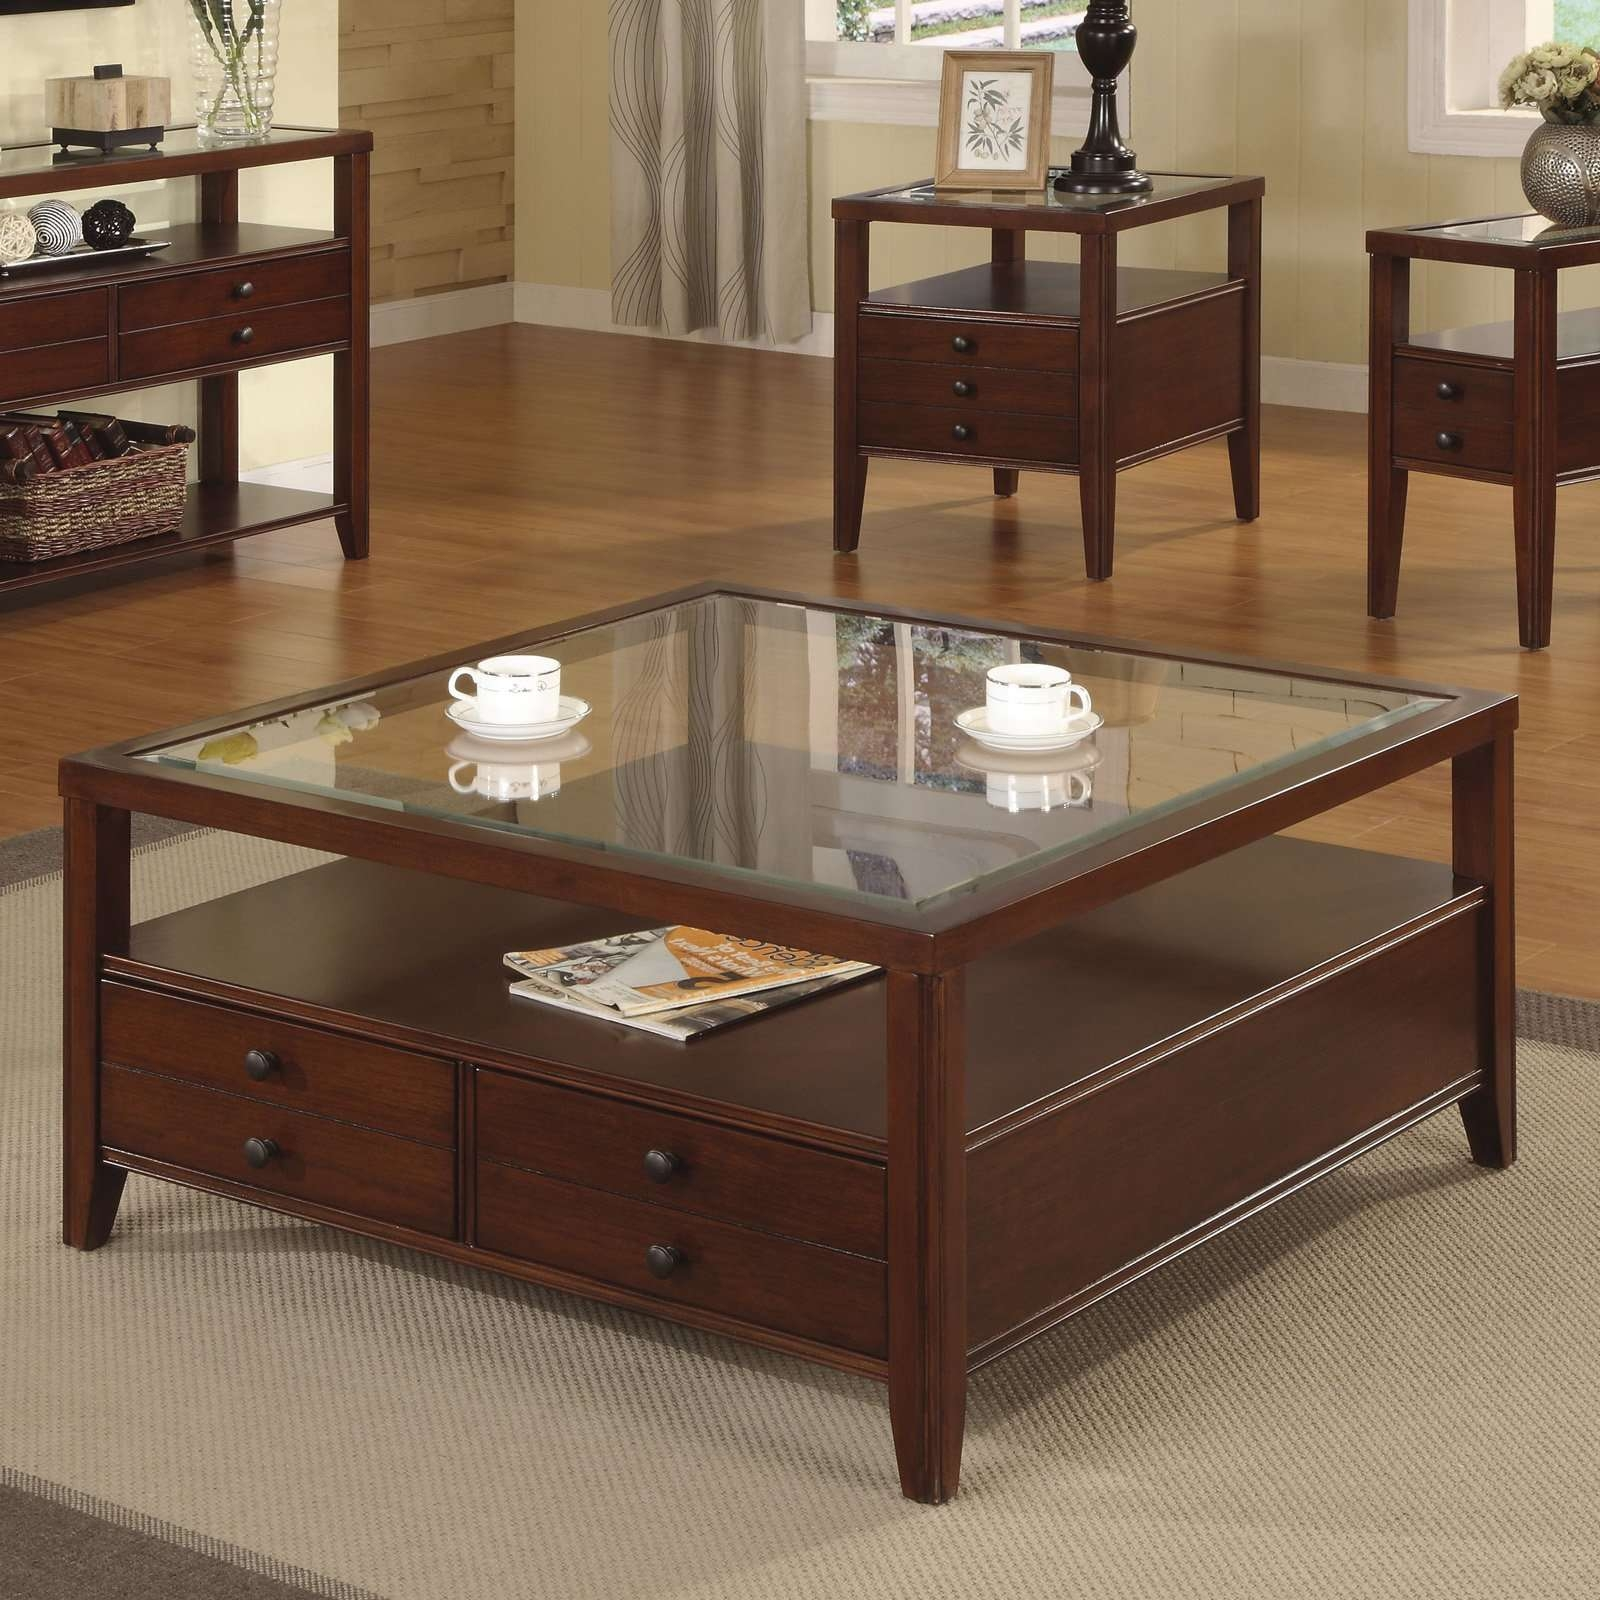 Coffee Table : Square Coffee Table With Drawers Storage Rustic Inside Well Known Square Coffee Tables With Drawers (View 11 of 20)